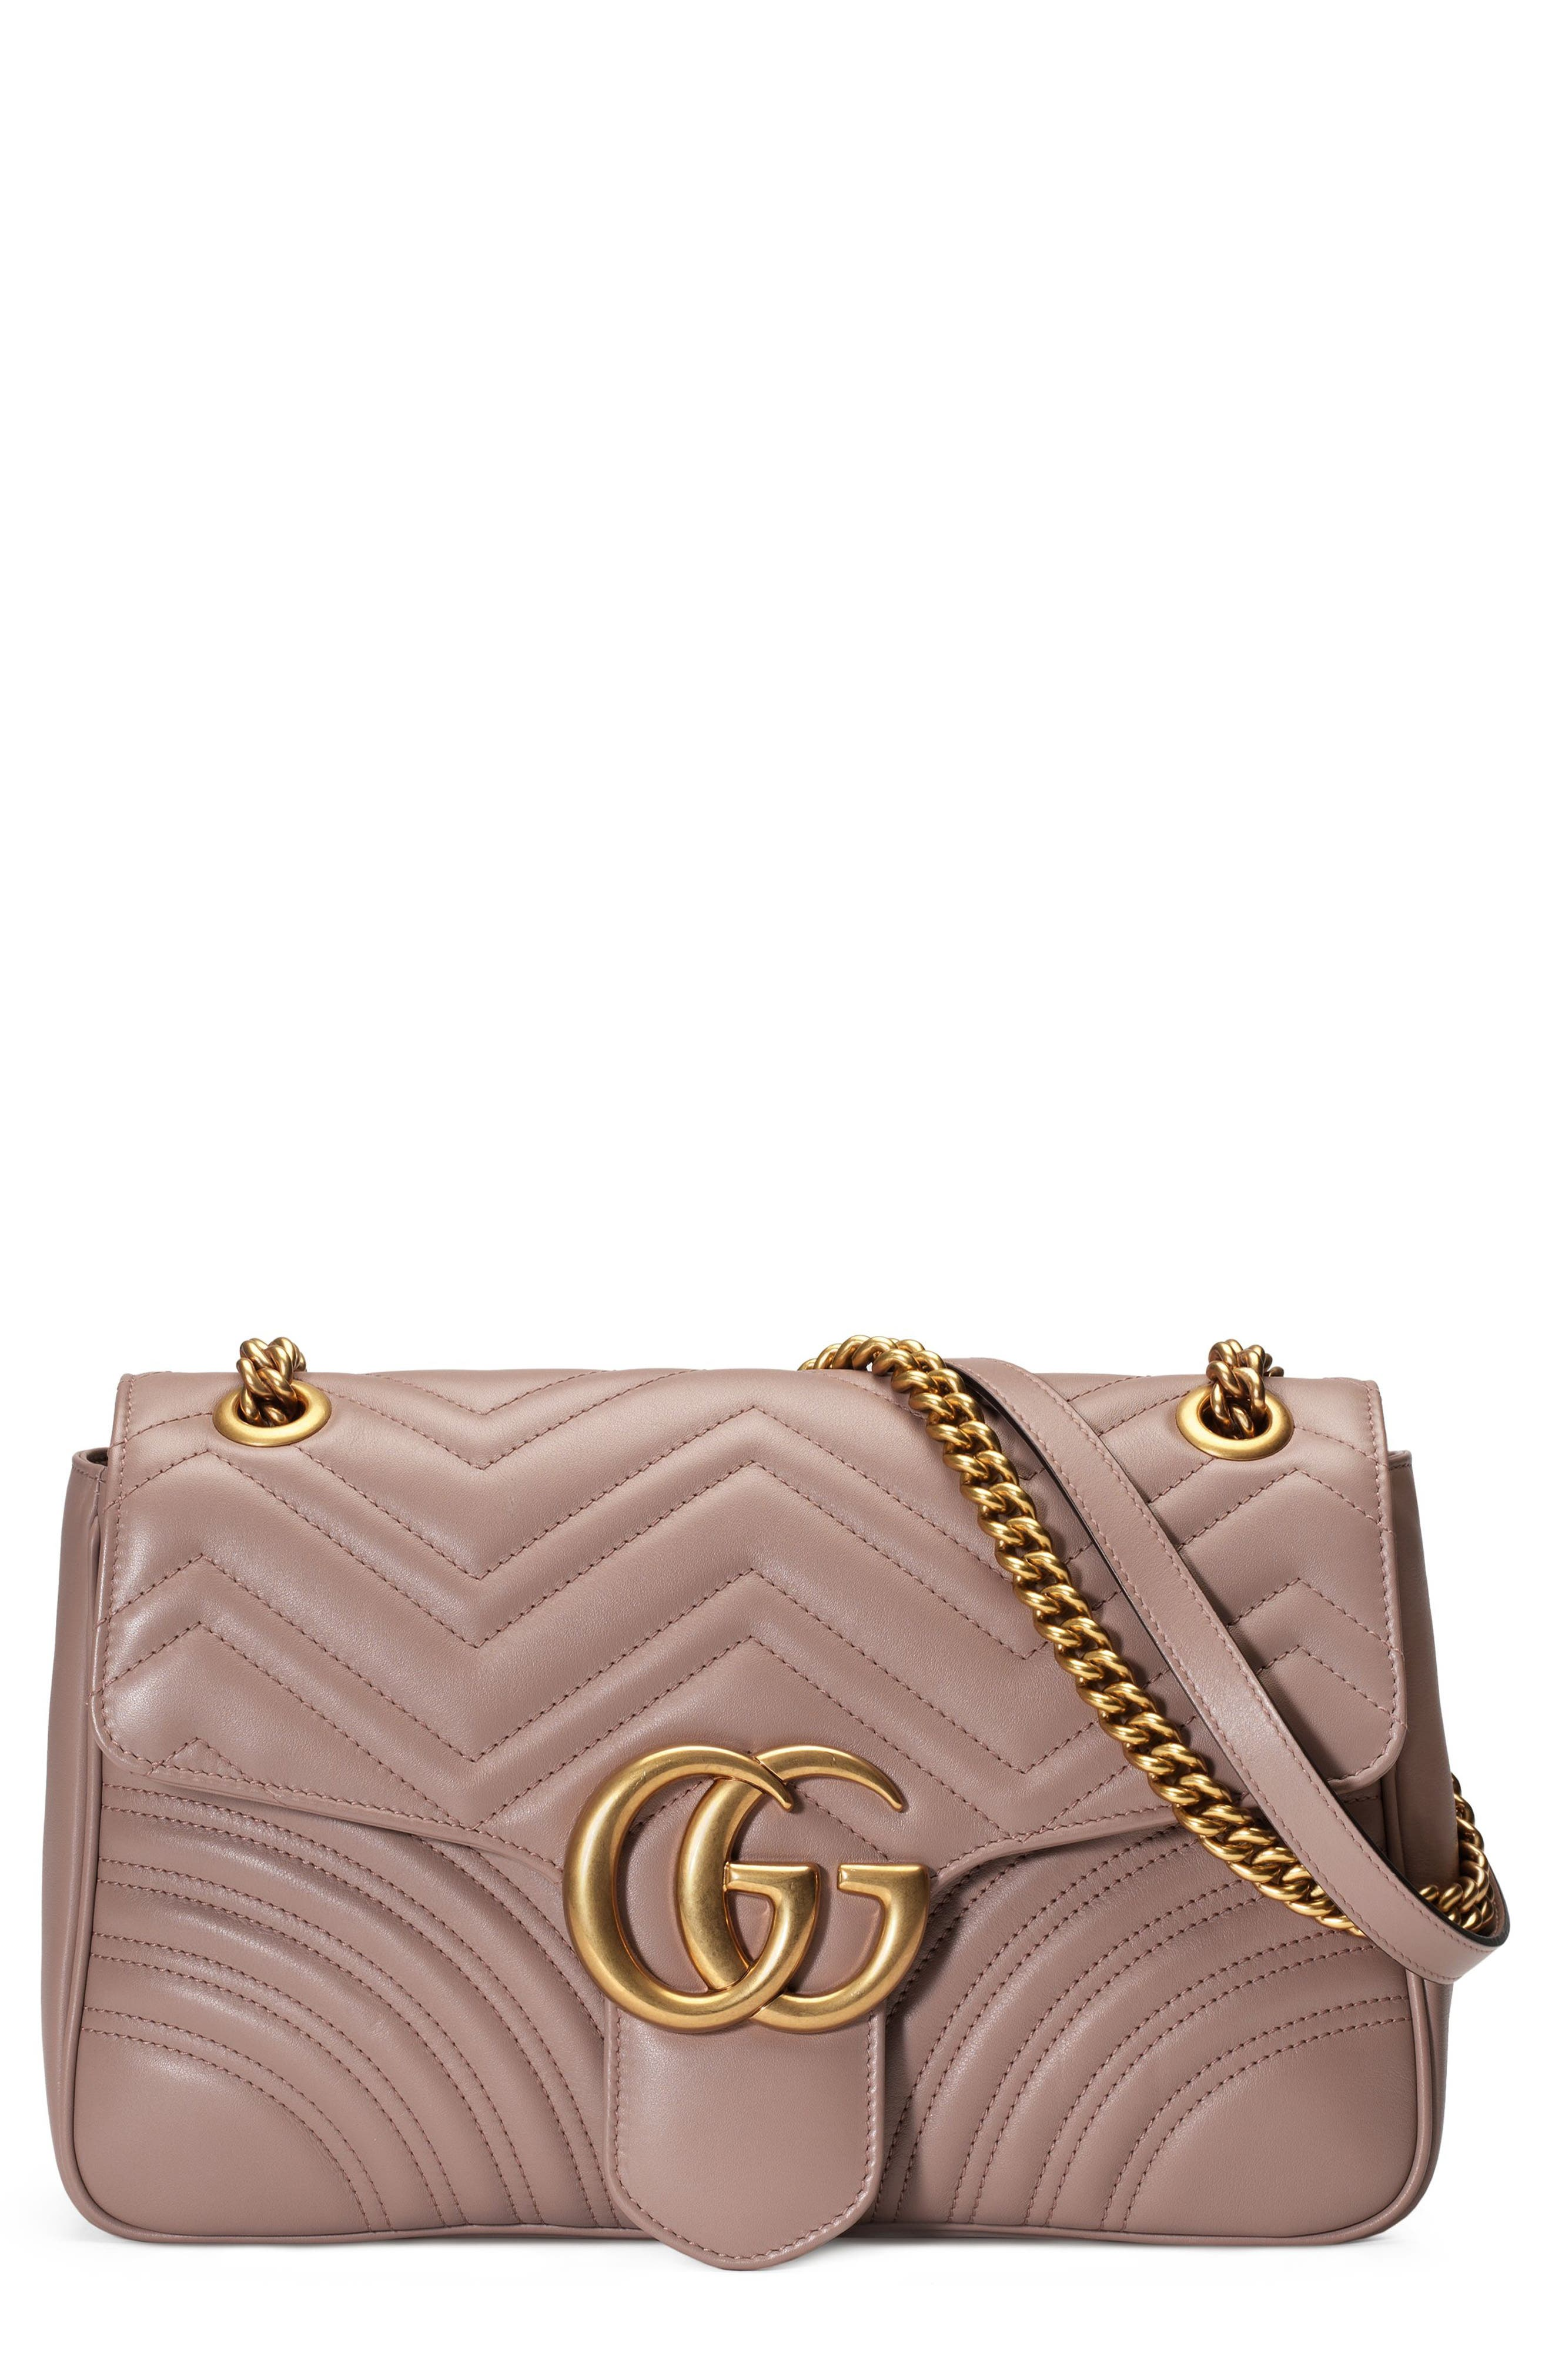 Gucci Handbags   Wallets for Women   Nordstrom e3a7d13458